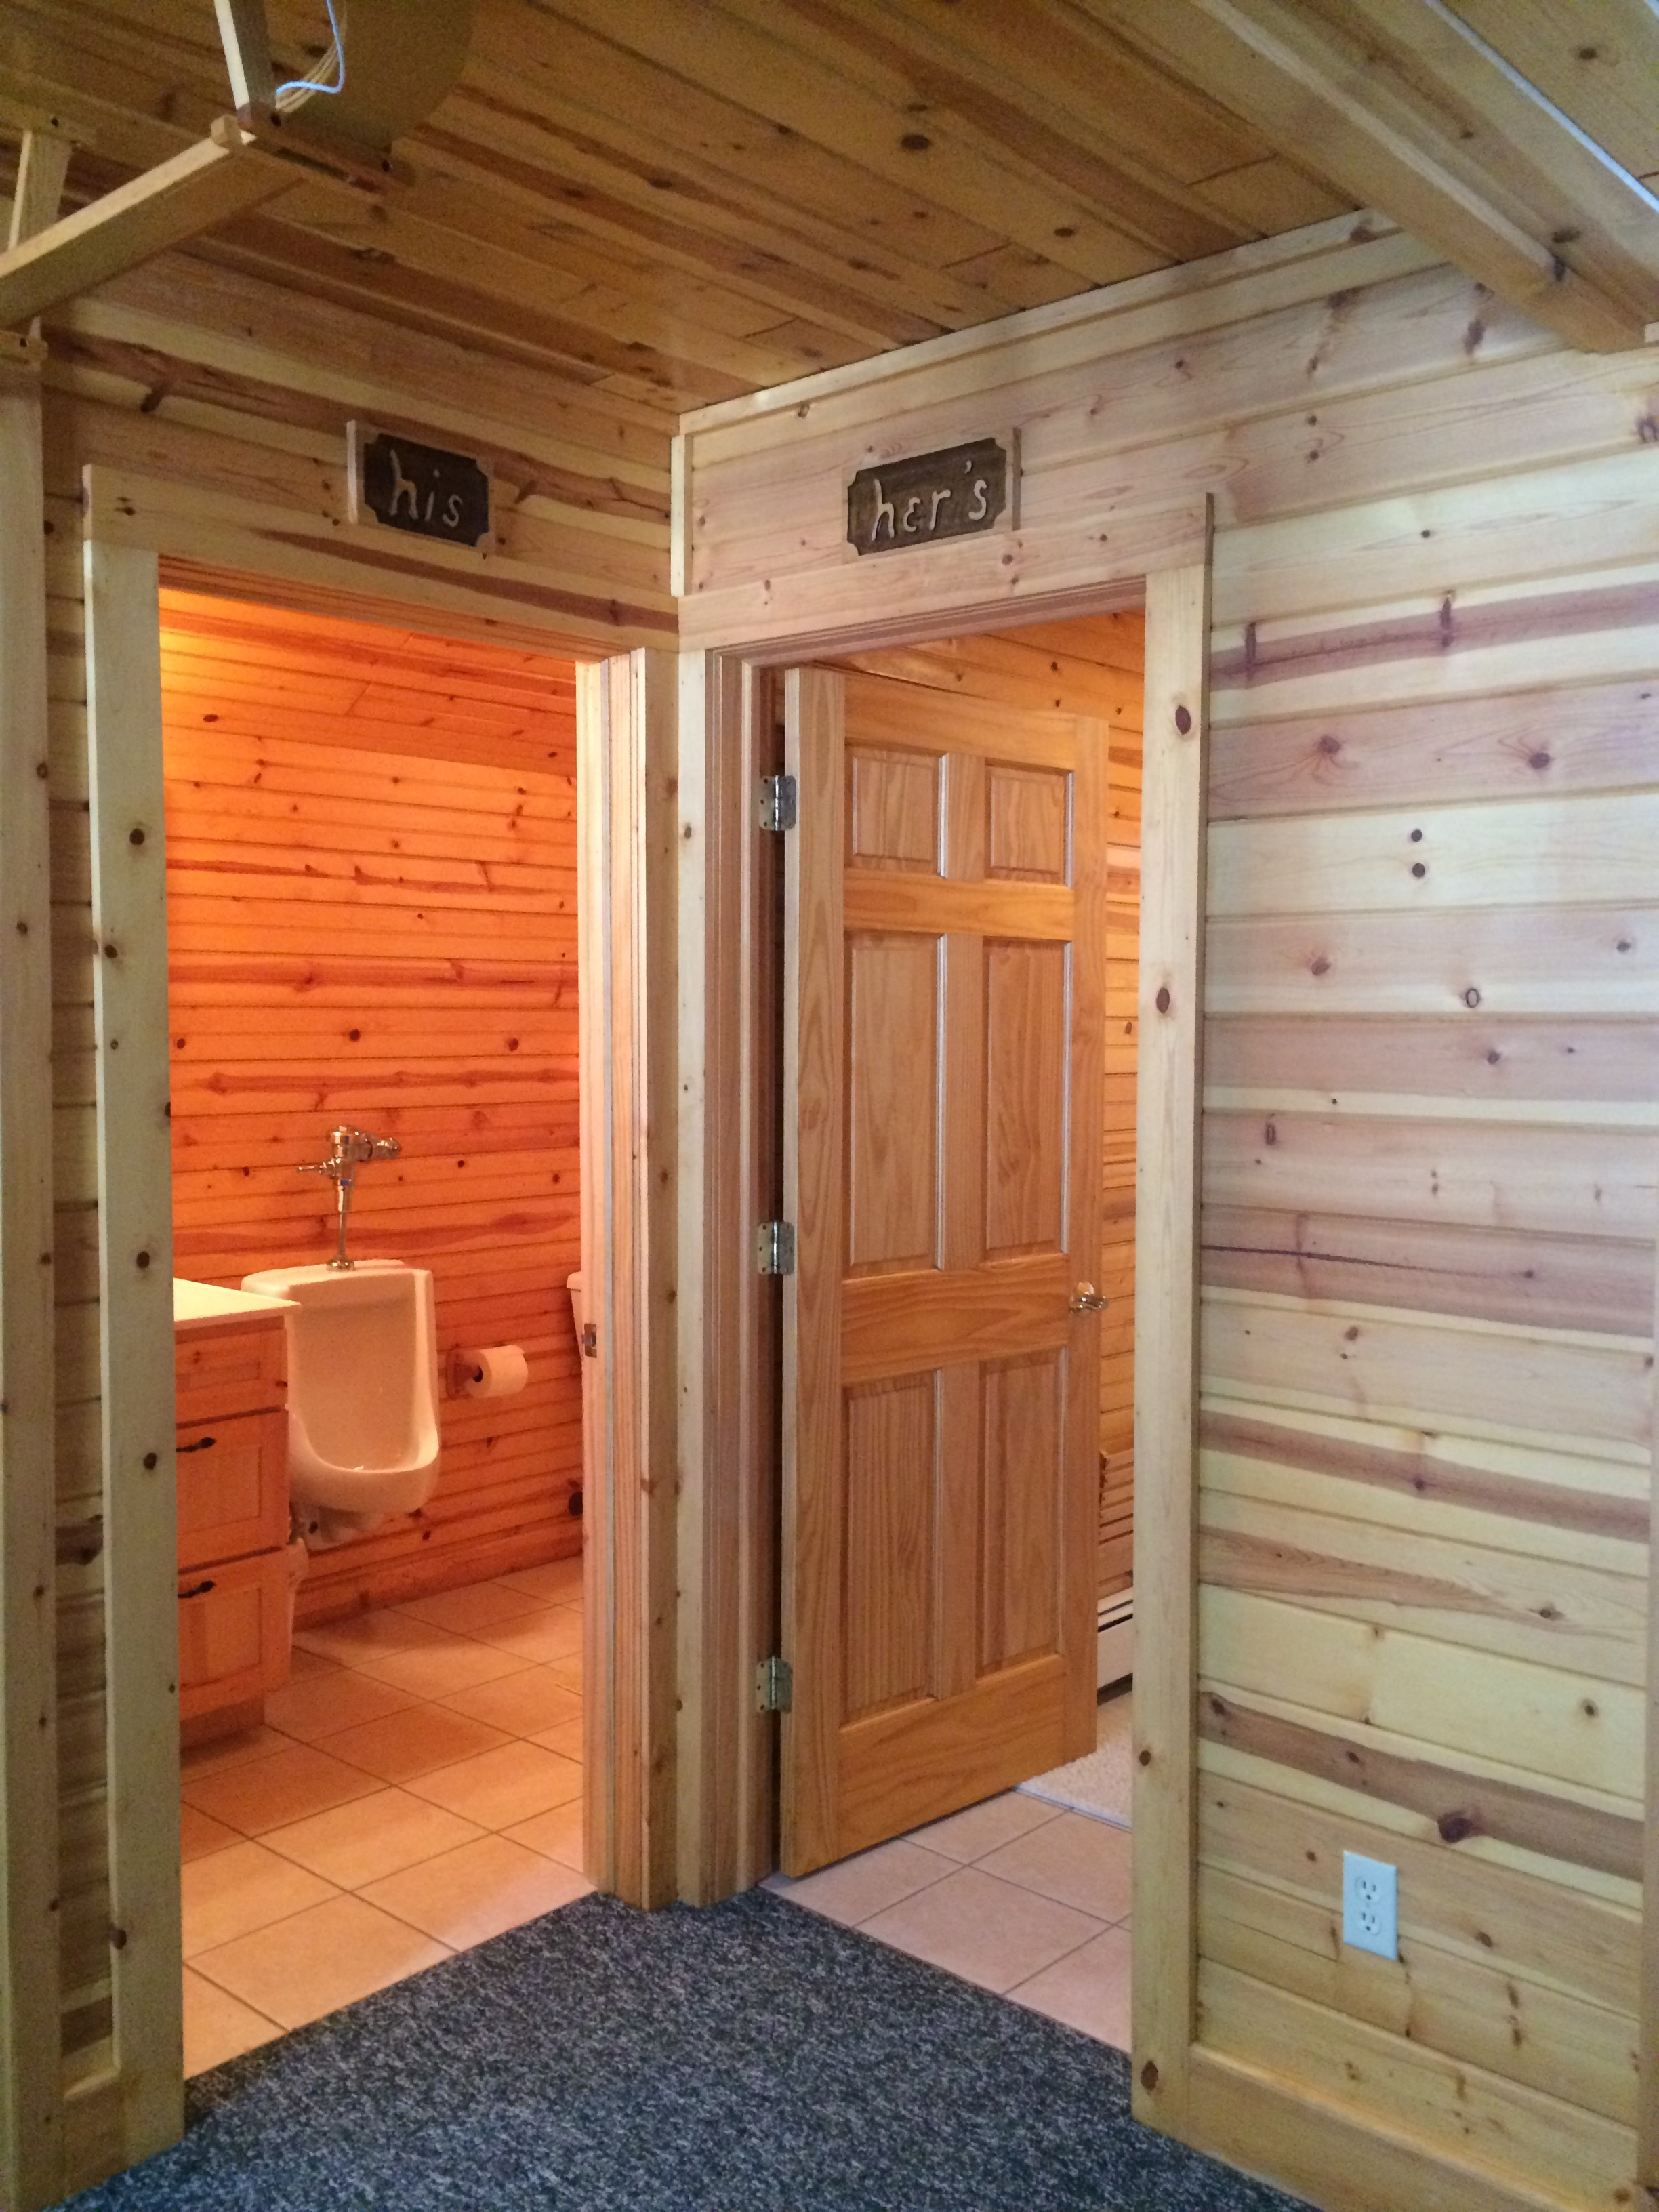 His and her's bathrooms on 2nd floor of Torch Lake Lodge. Both are full baths with showers.